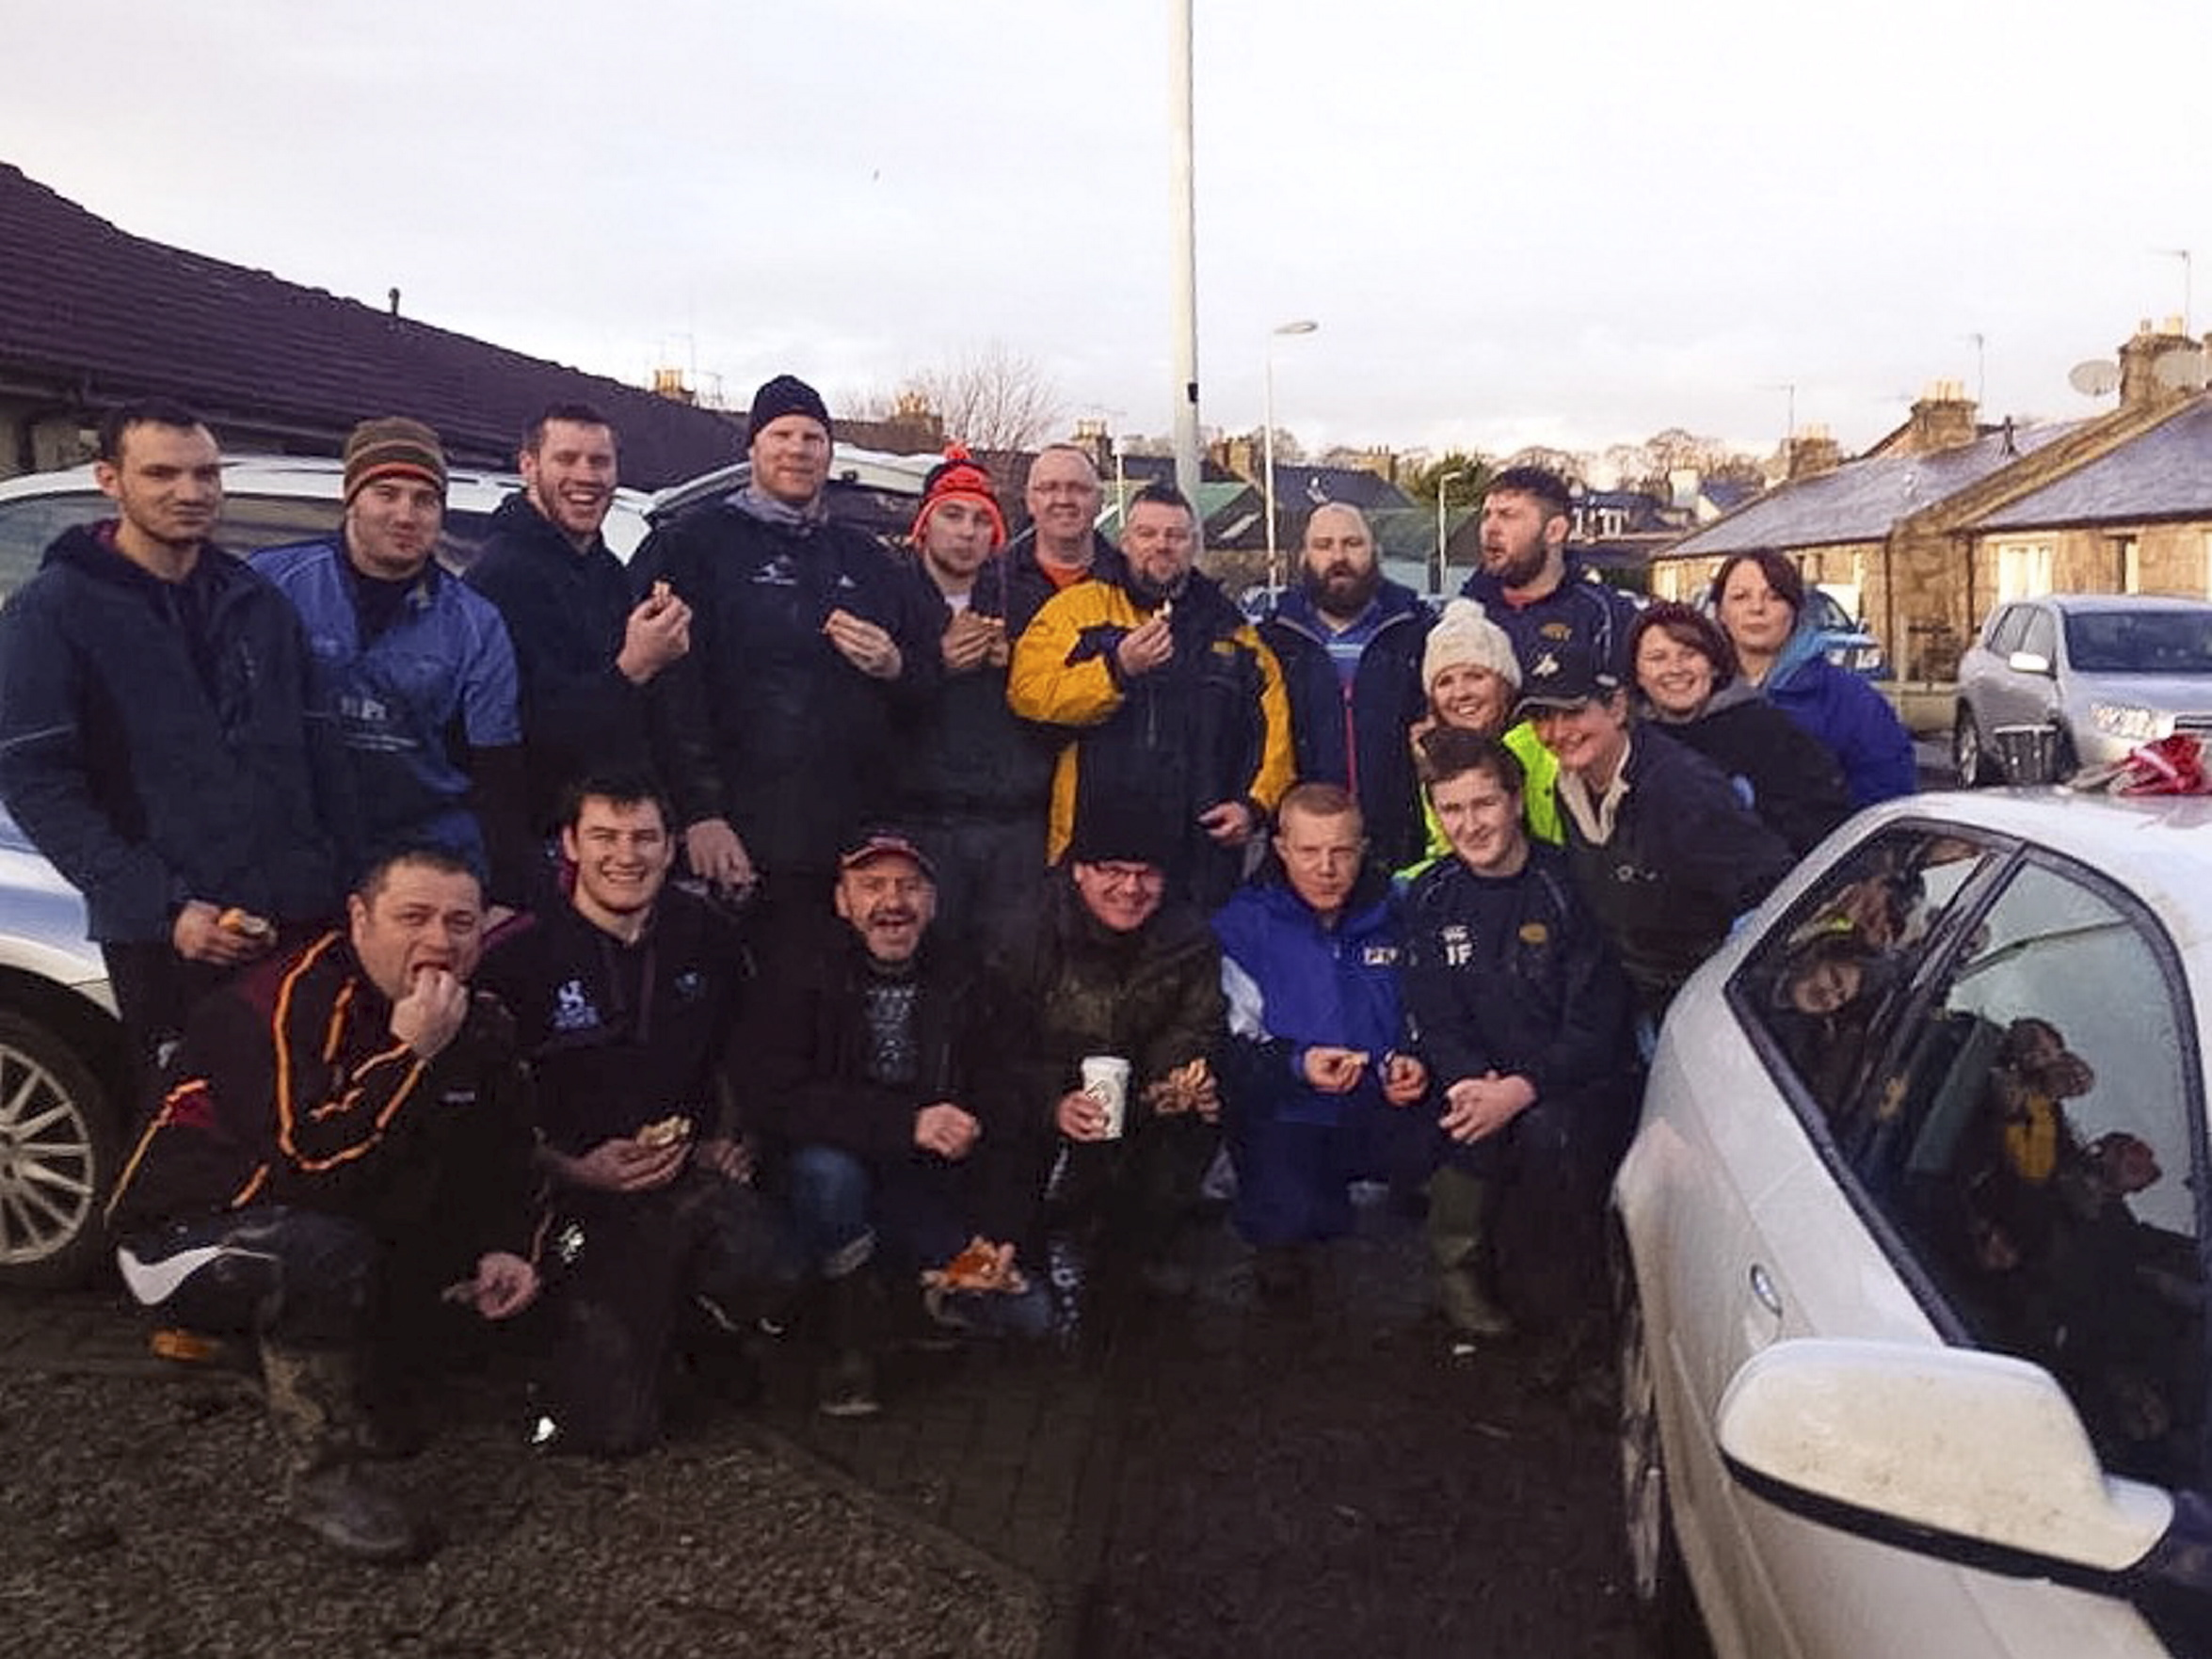 The guys and girls from Garioch RFC enjoyed a well-earned bacon roll, donated by local business man and Garioch fan, Gary Cox.